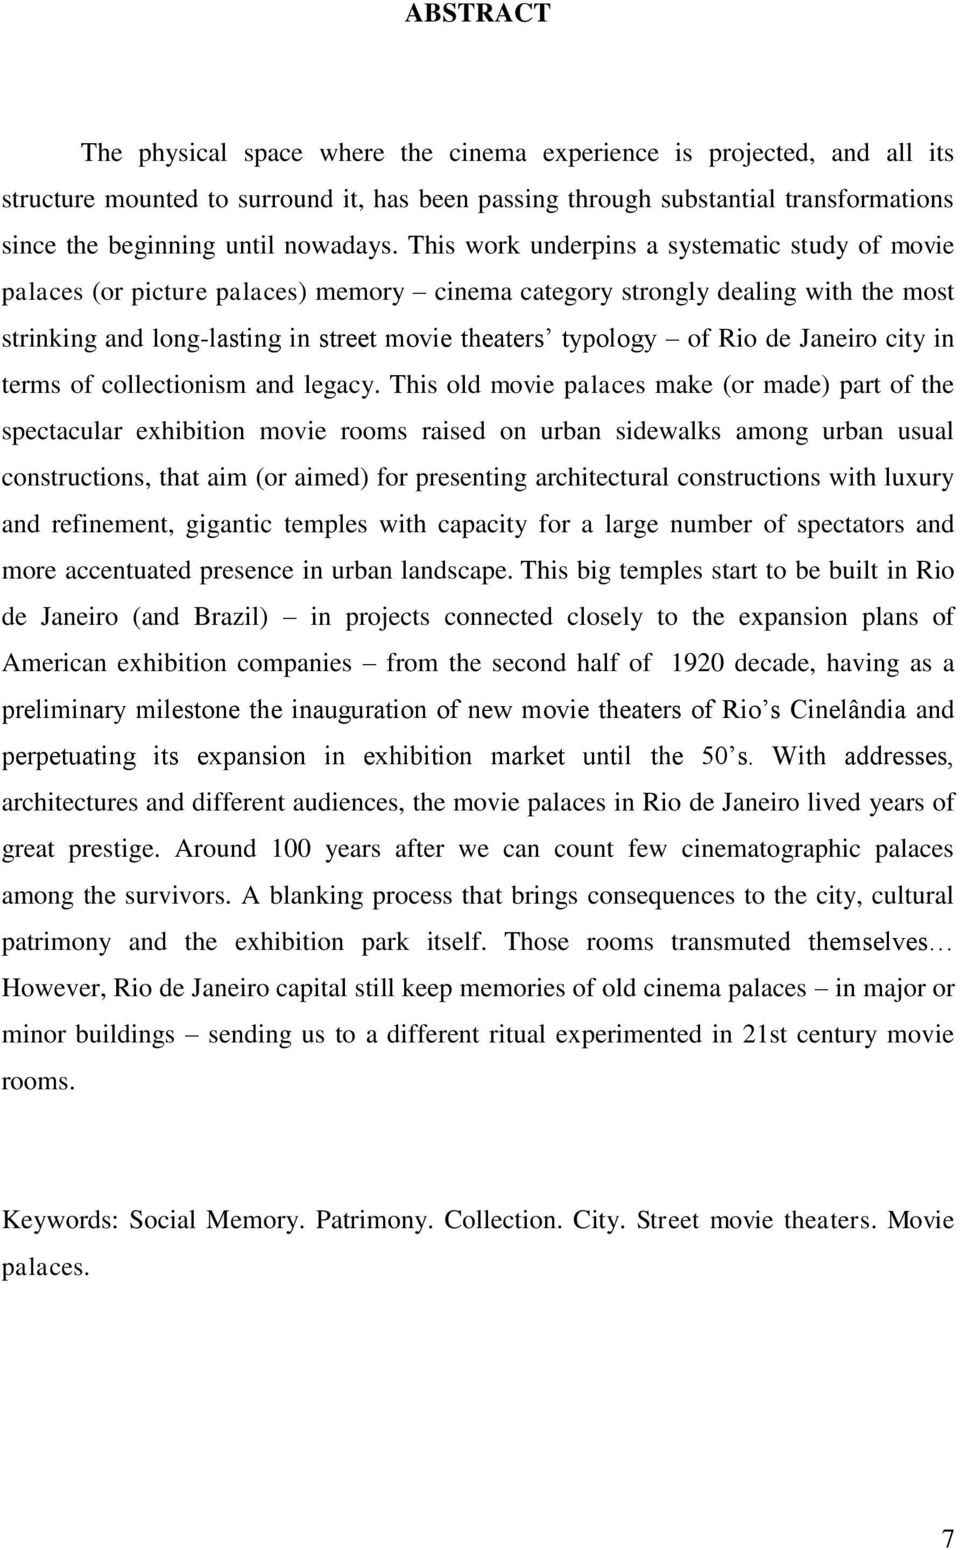 This work underpins a systematic study of movie palaces (or picture palaces) memory cinema category strongly dealing with the most strinking and long-lasting in street movie theaters typology of Rio